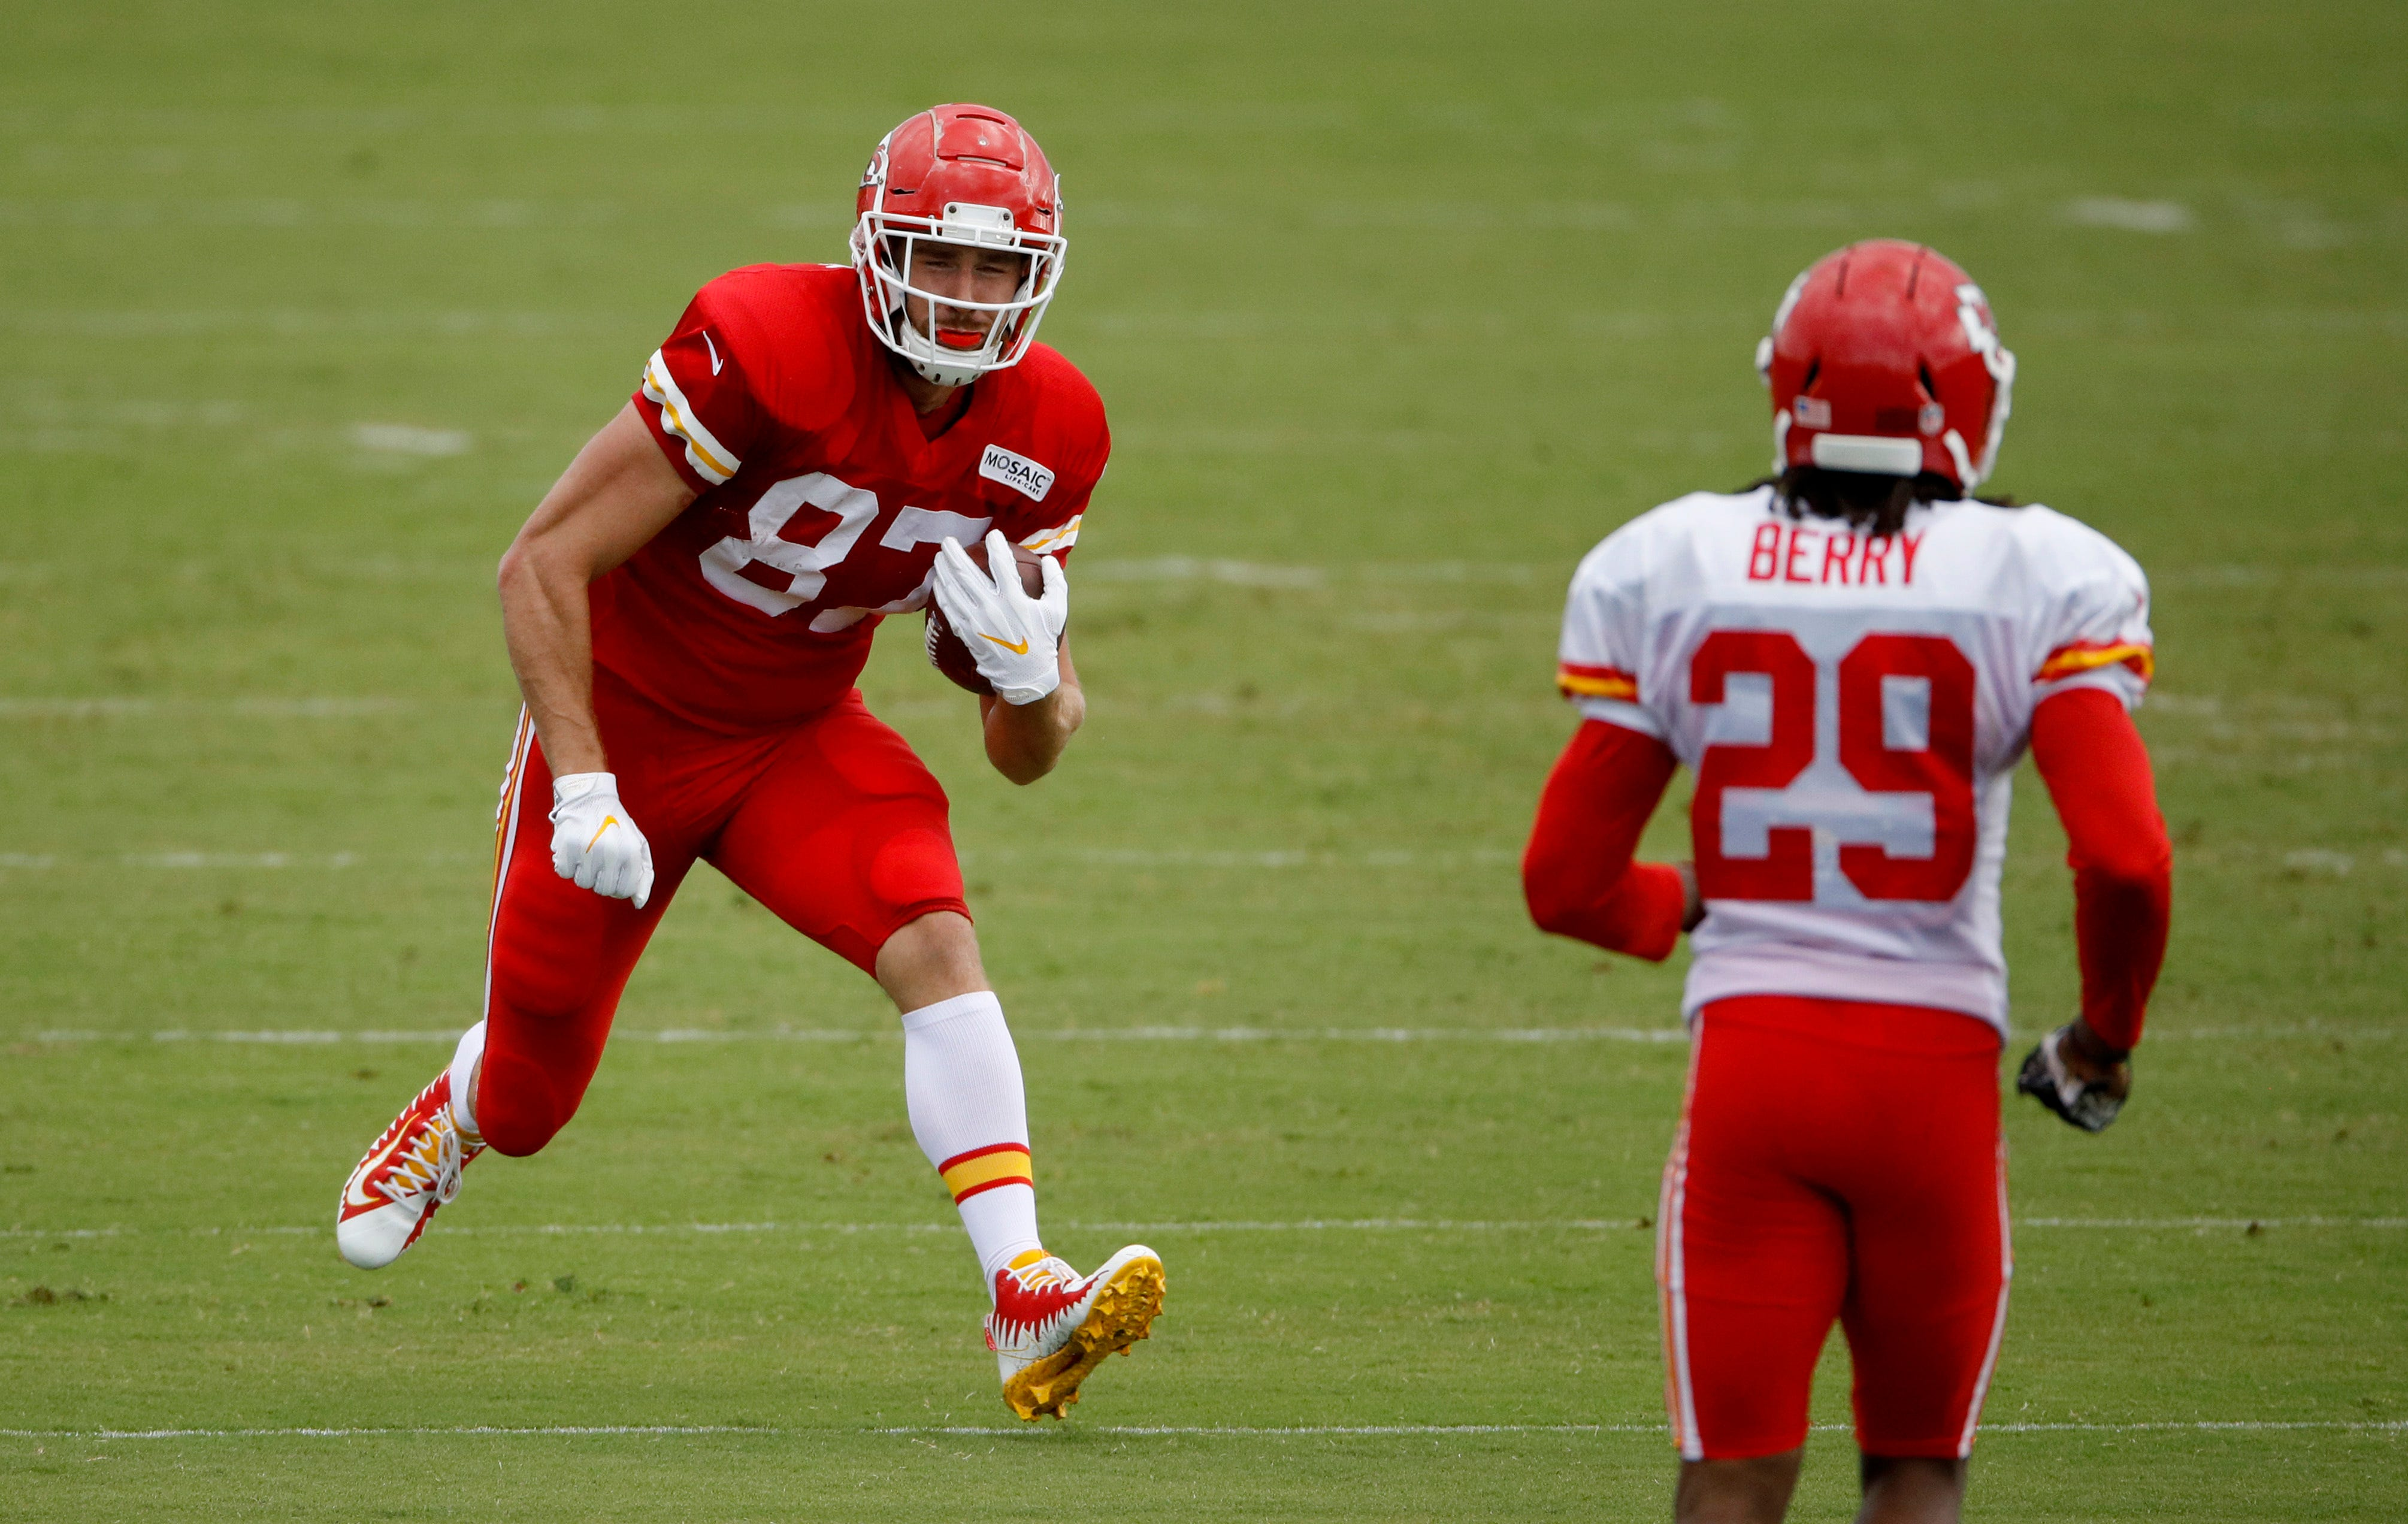 Chiefs' Eric Berry back from another season-ending injury